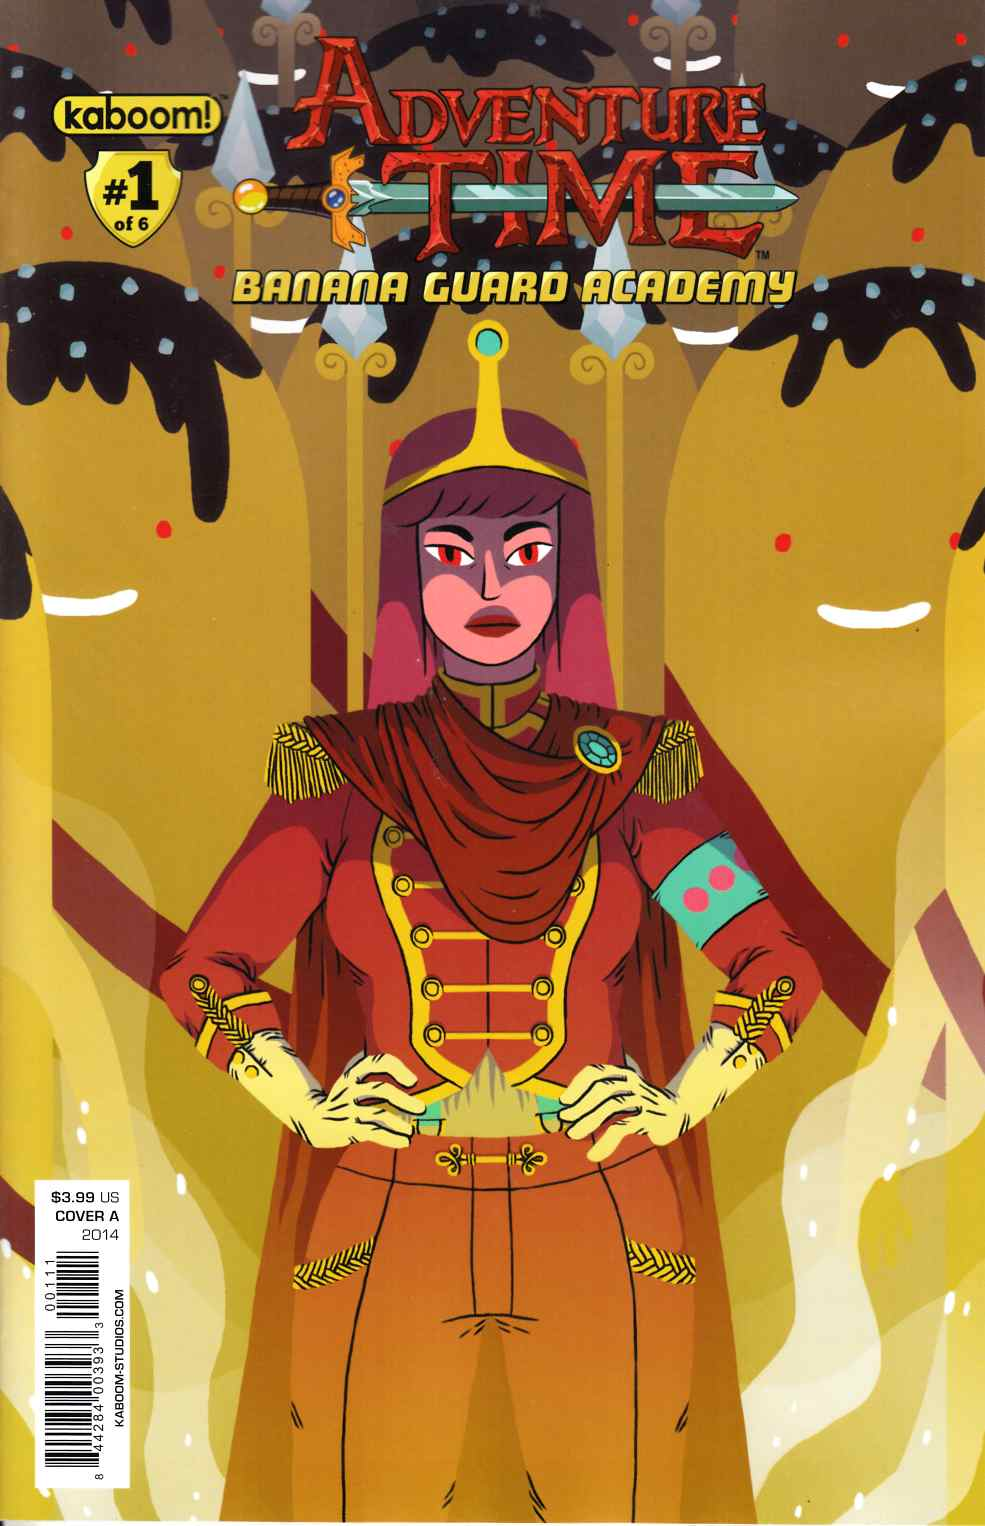 Adventure Time Banana Guard Academy #1 Cover A [Comic]